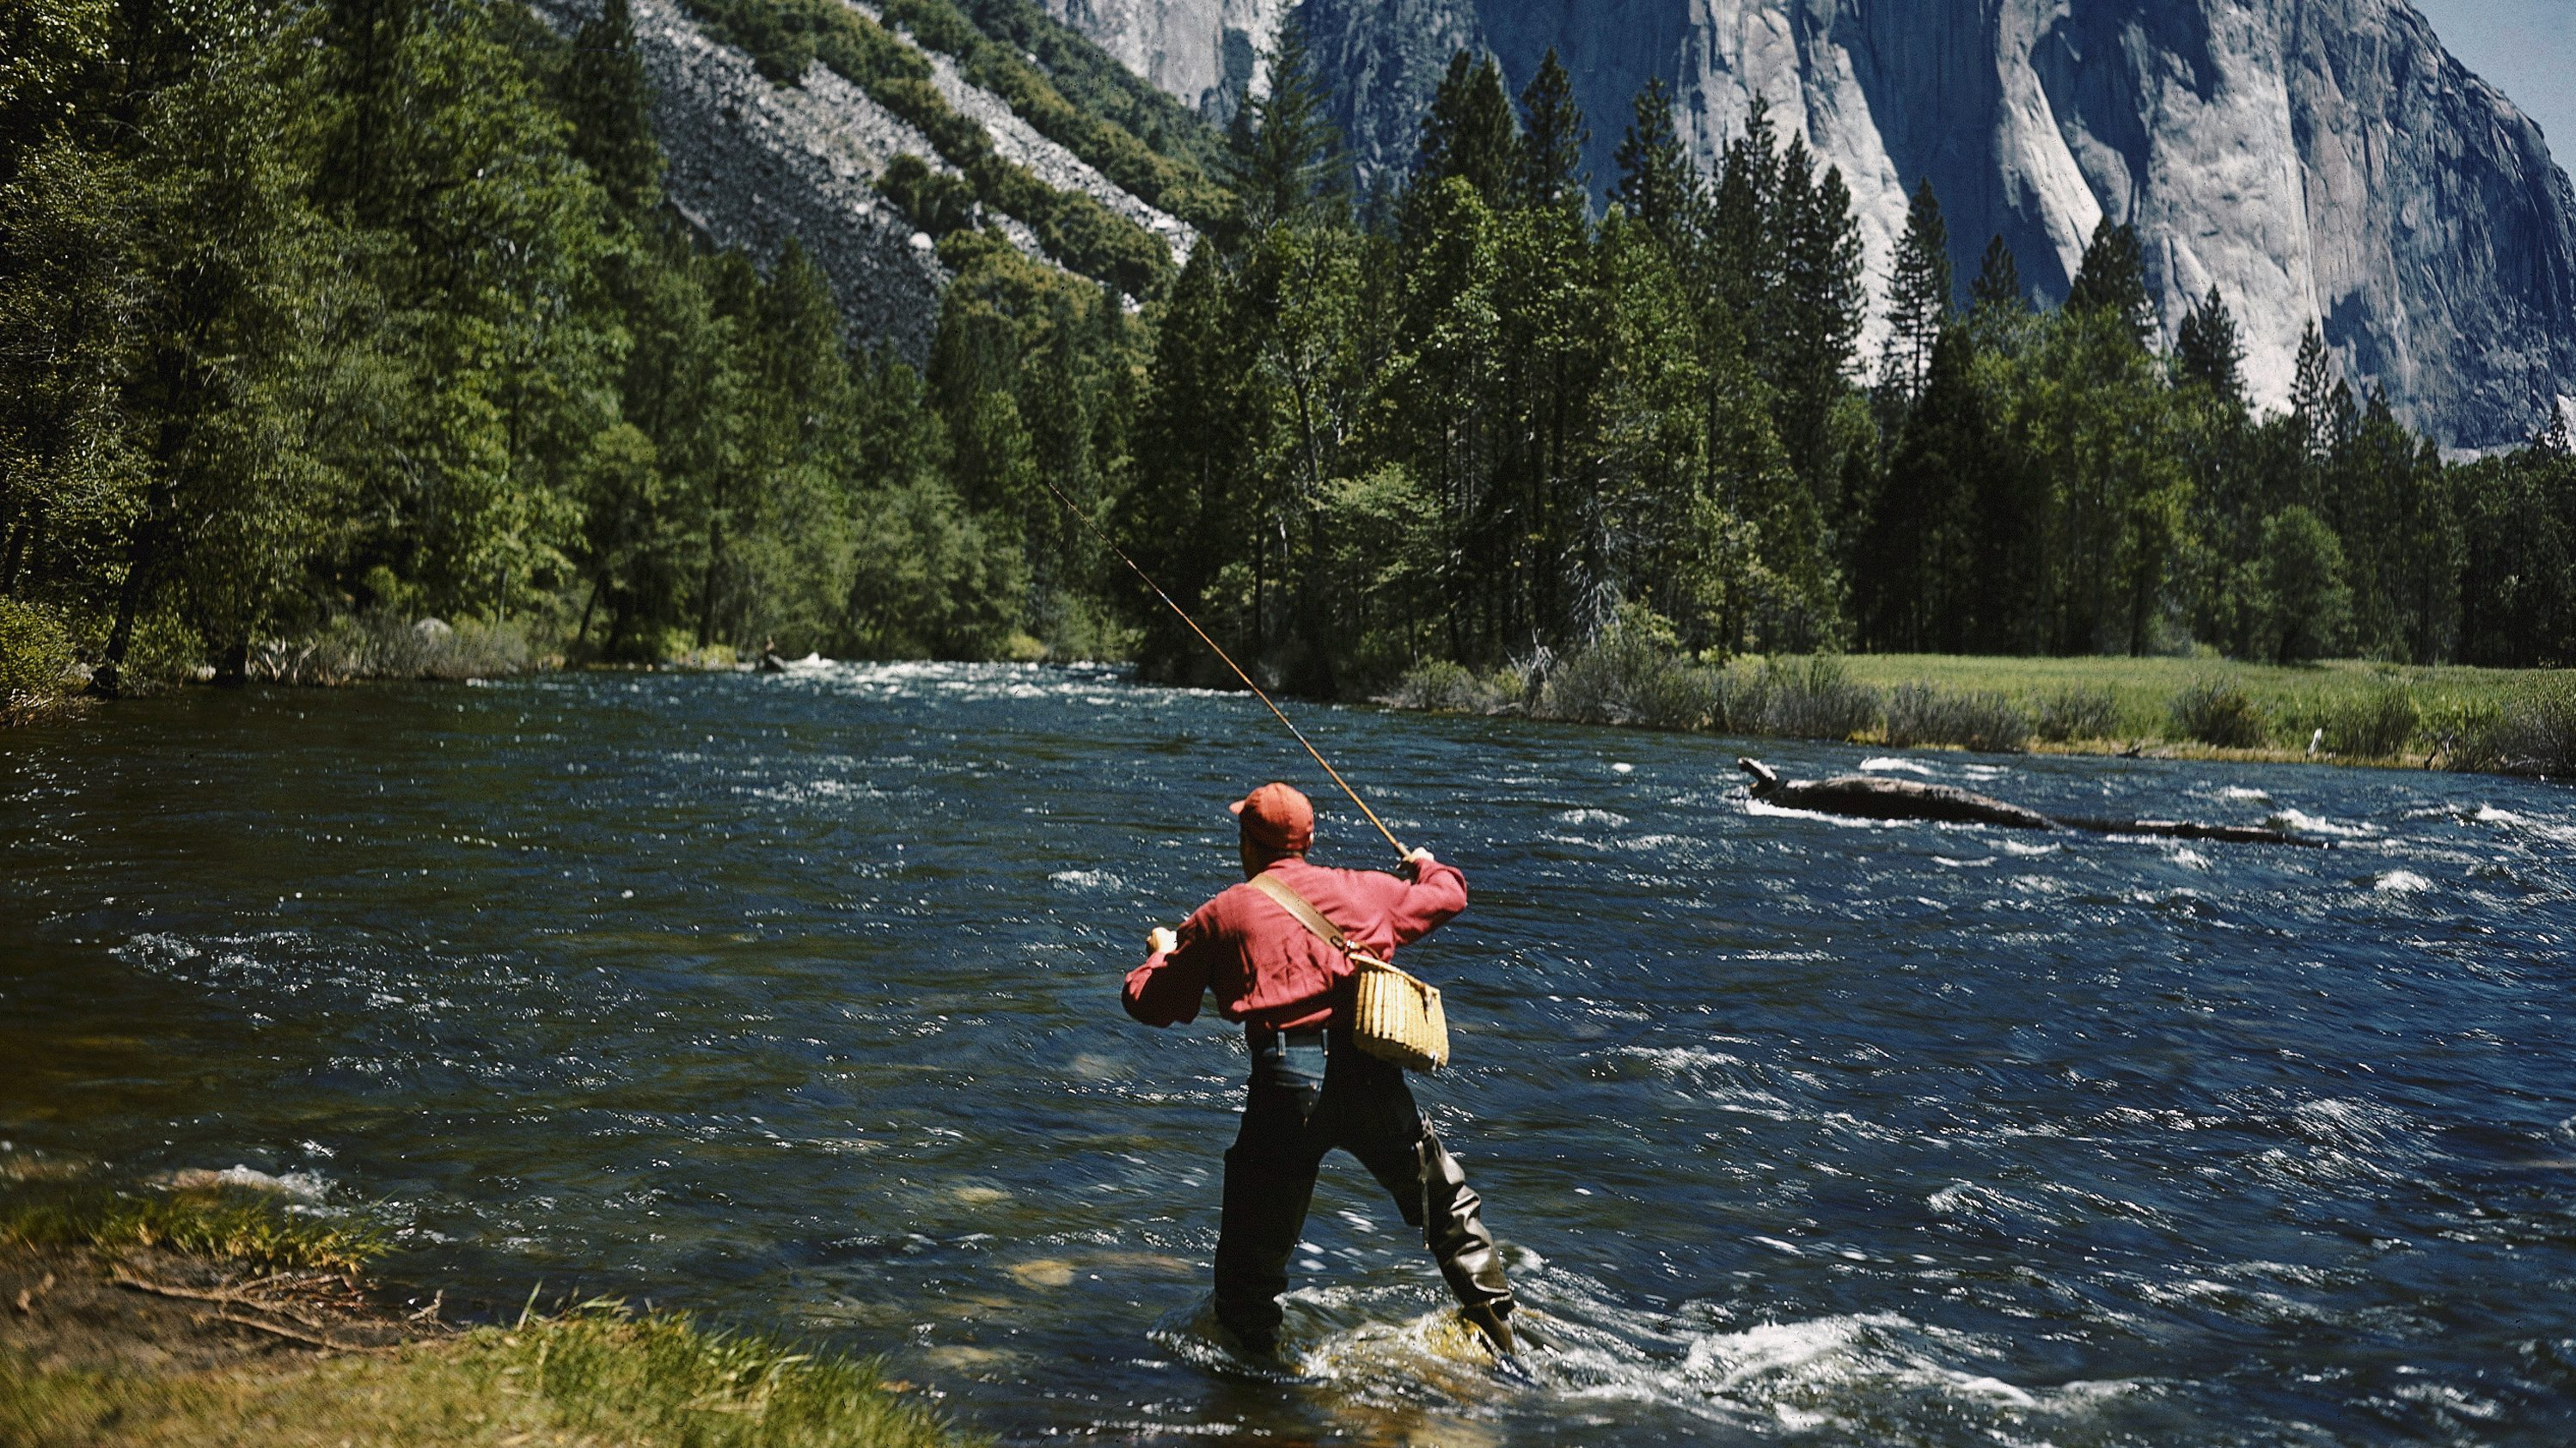 Fisherman in Yosemite National Park